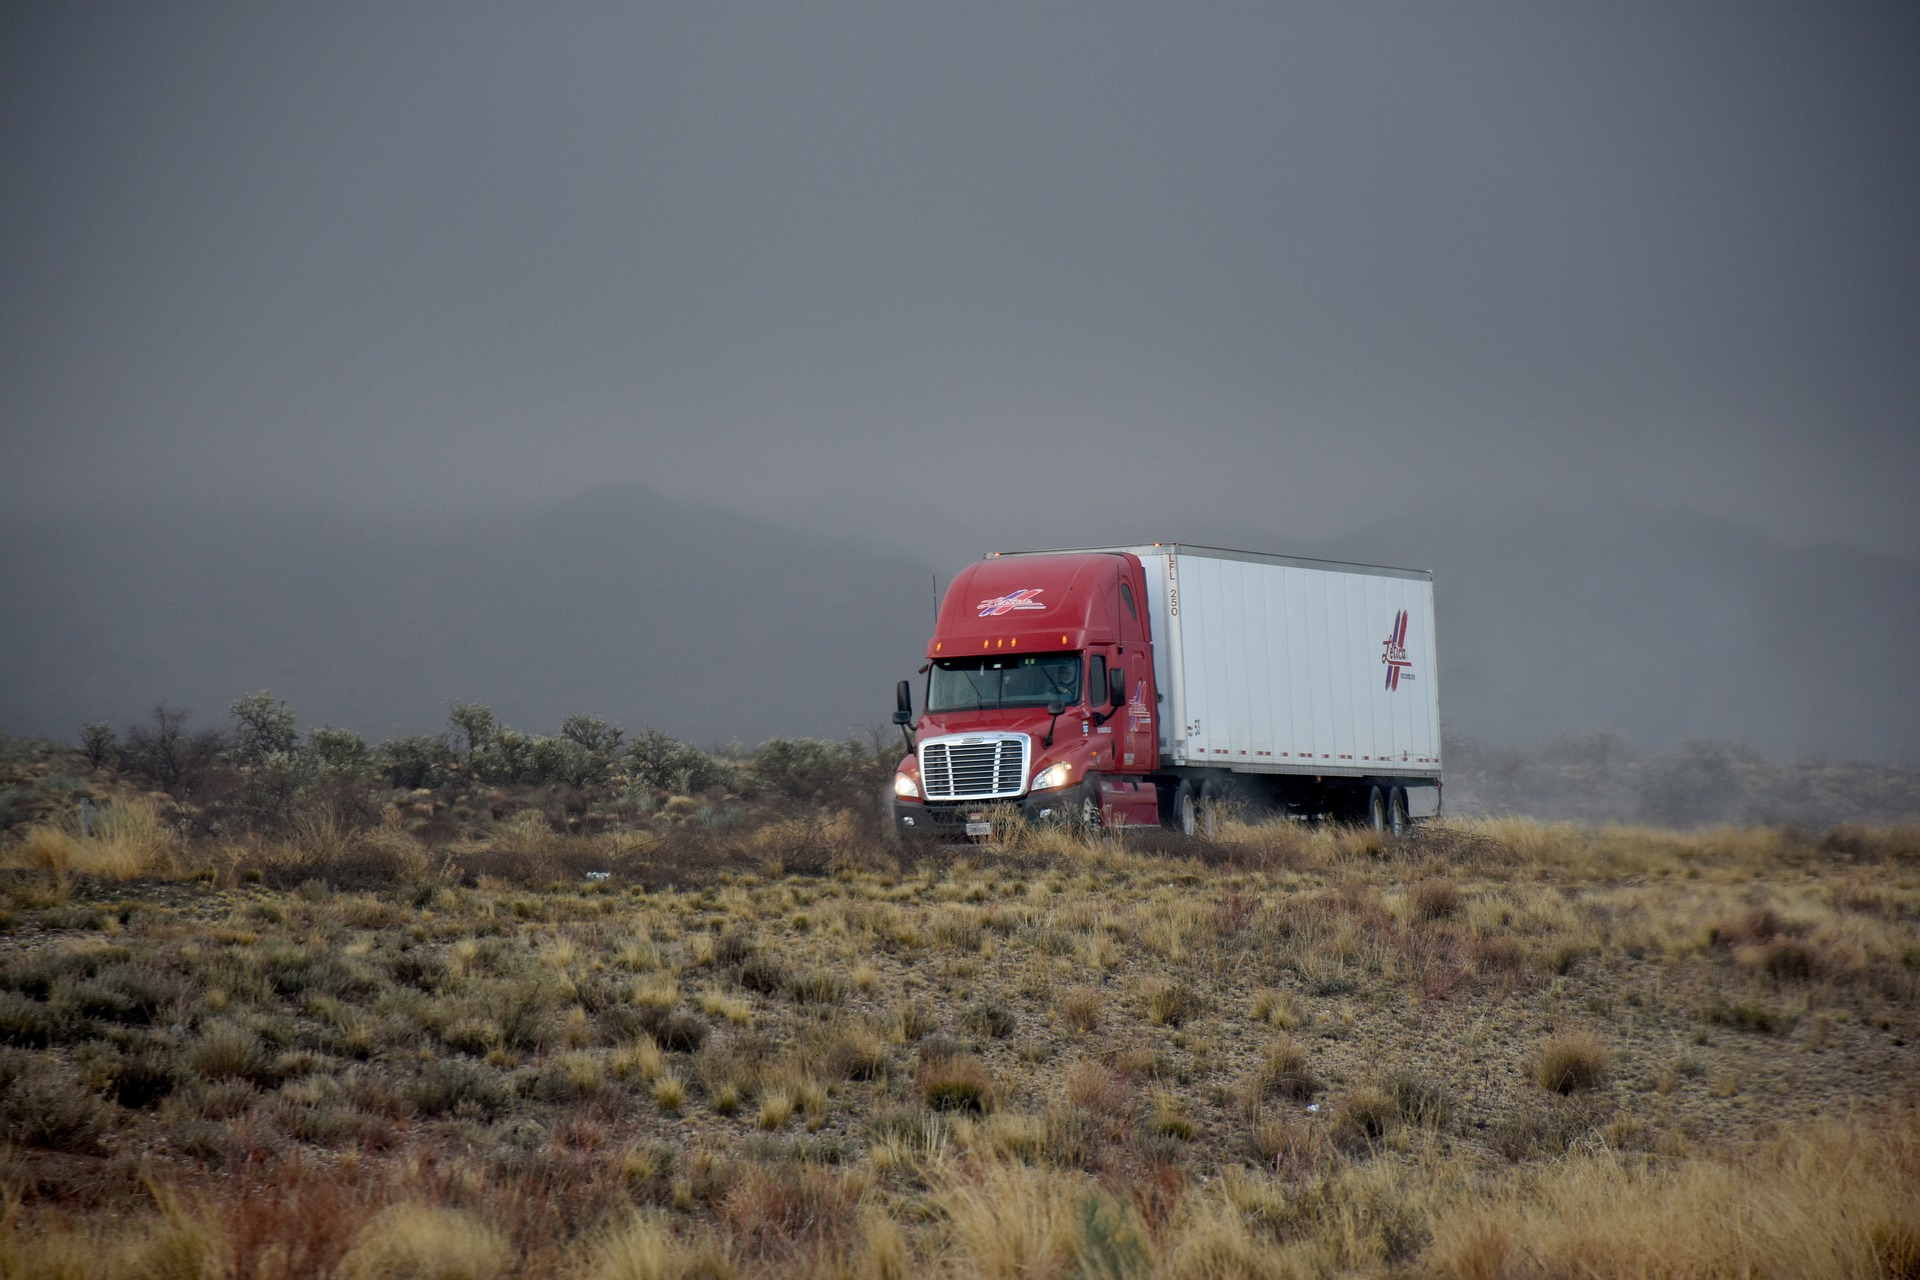 semi truck on the road in the desert